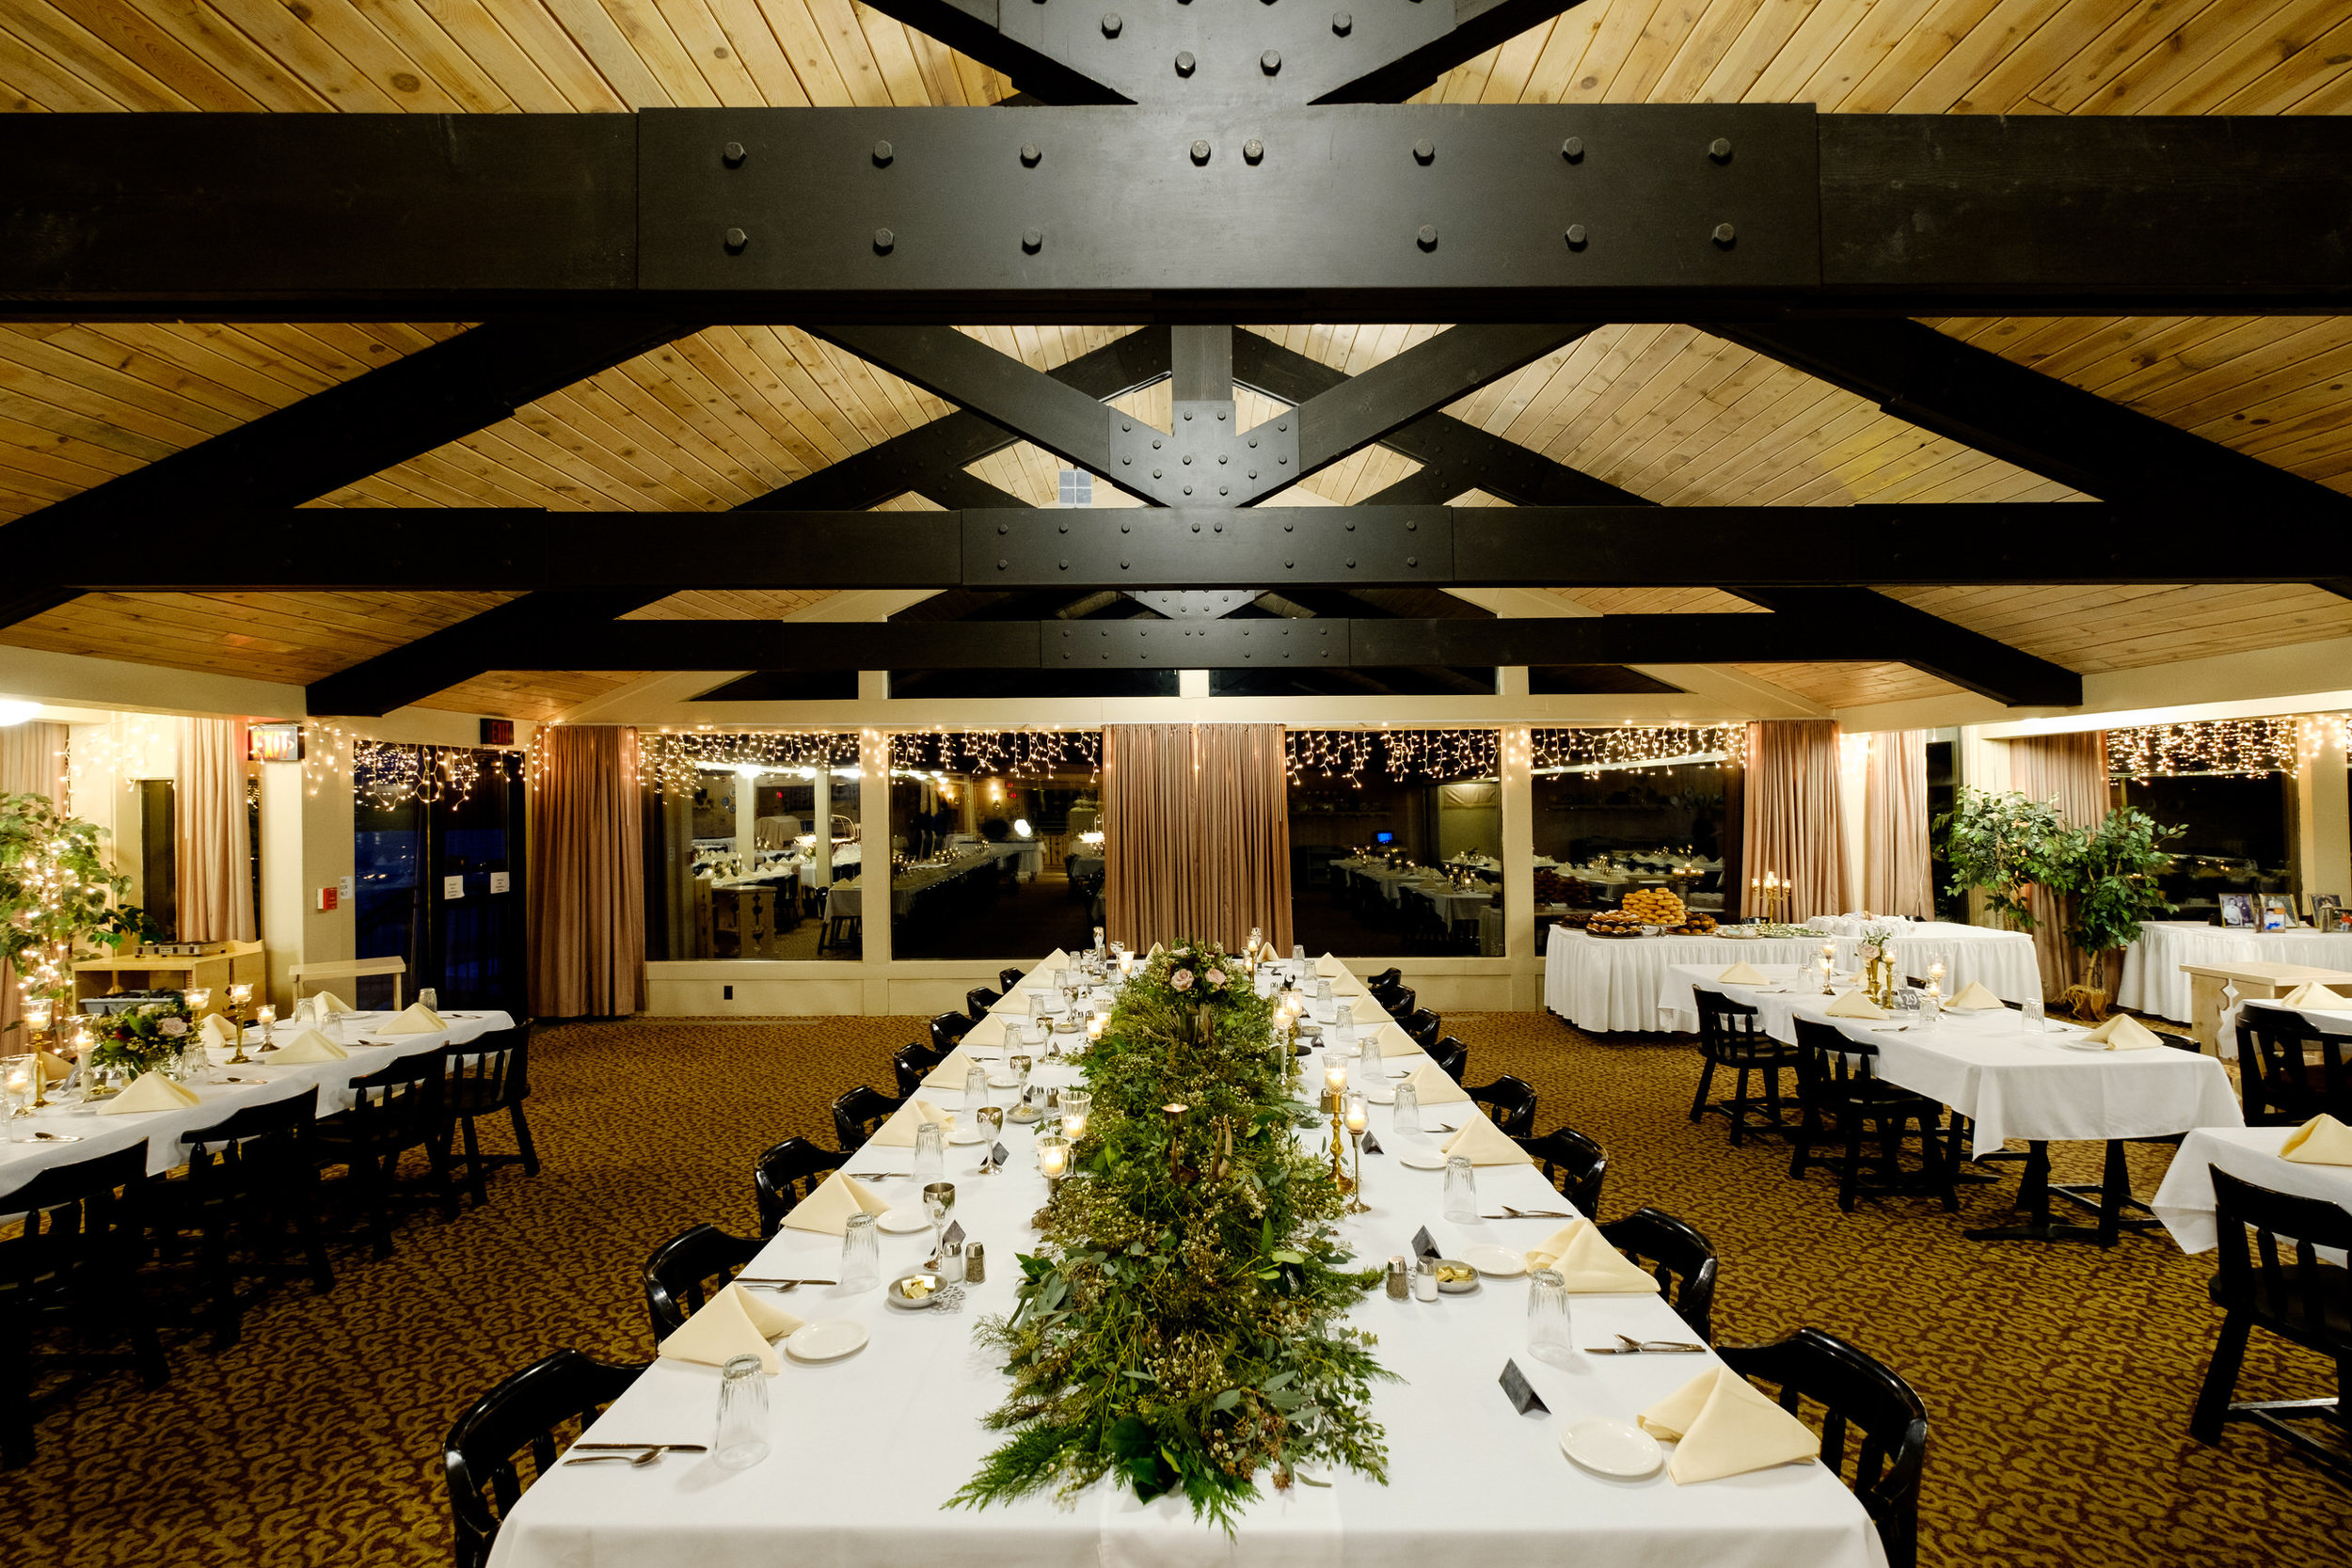 cragun's resort dining hall wedding reception